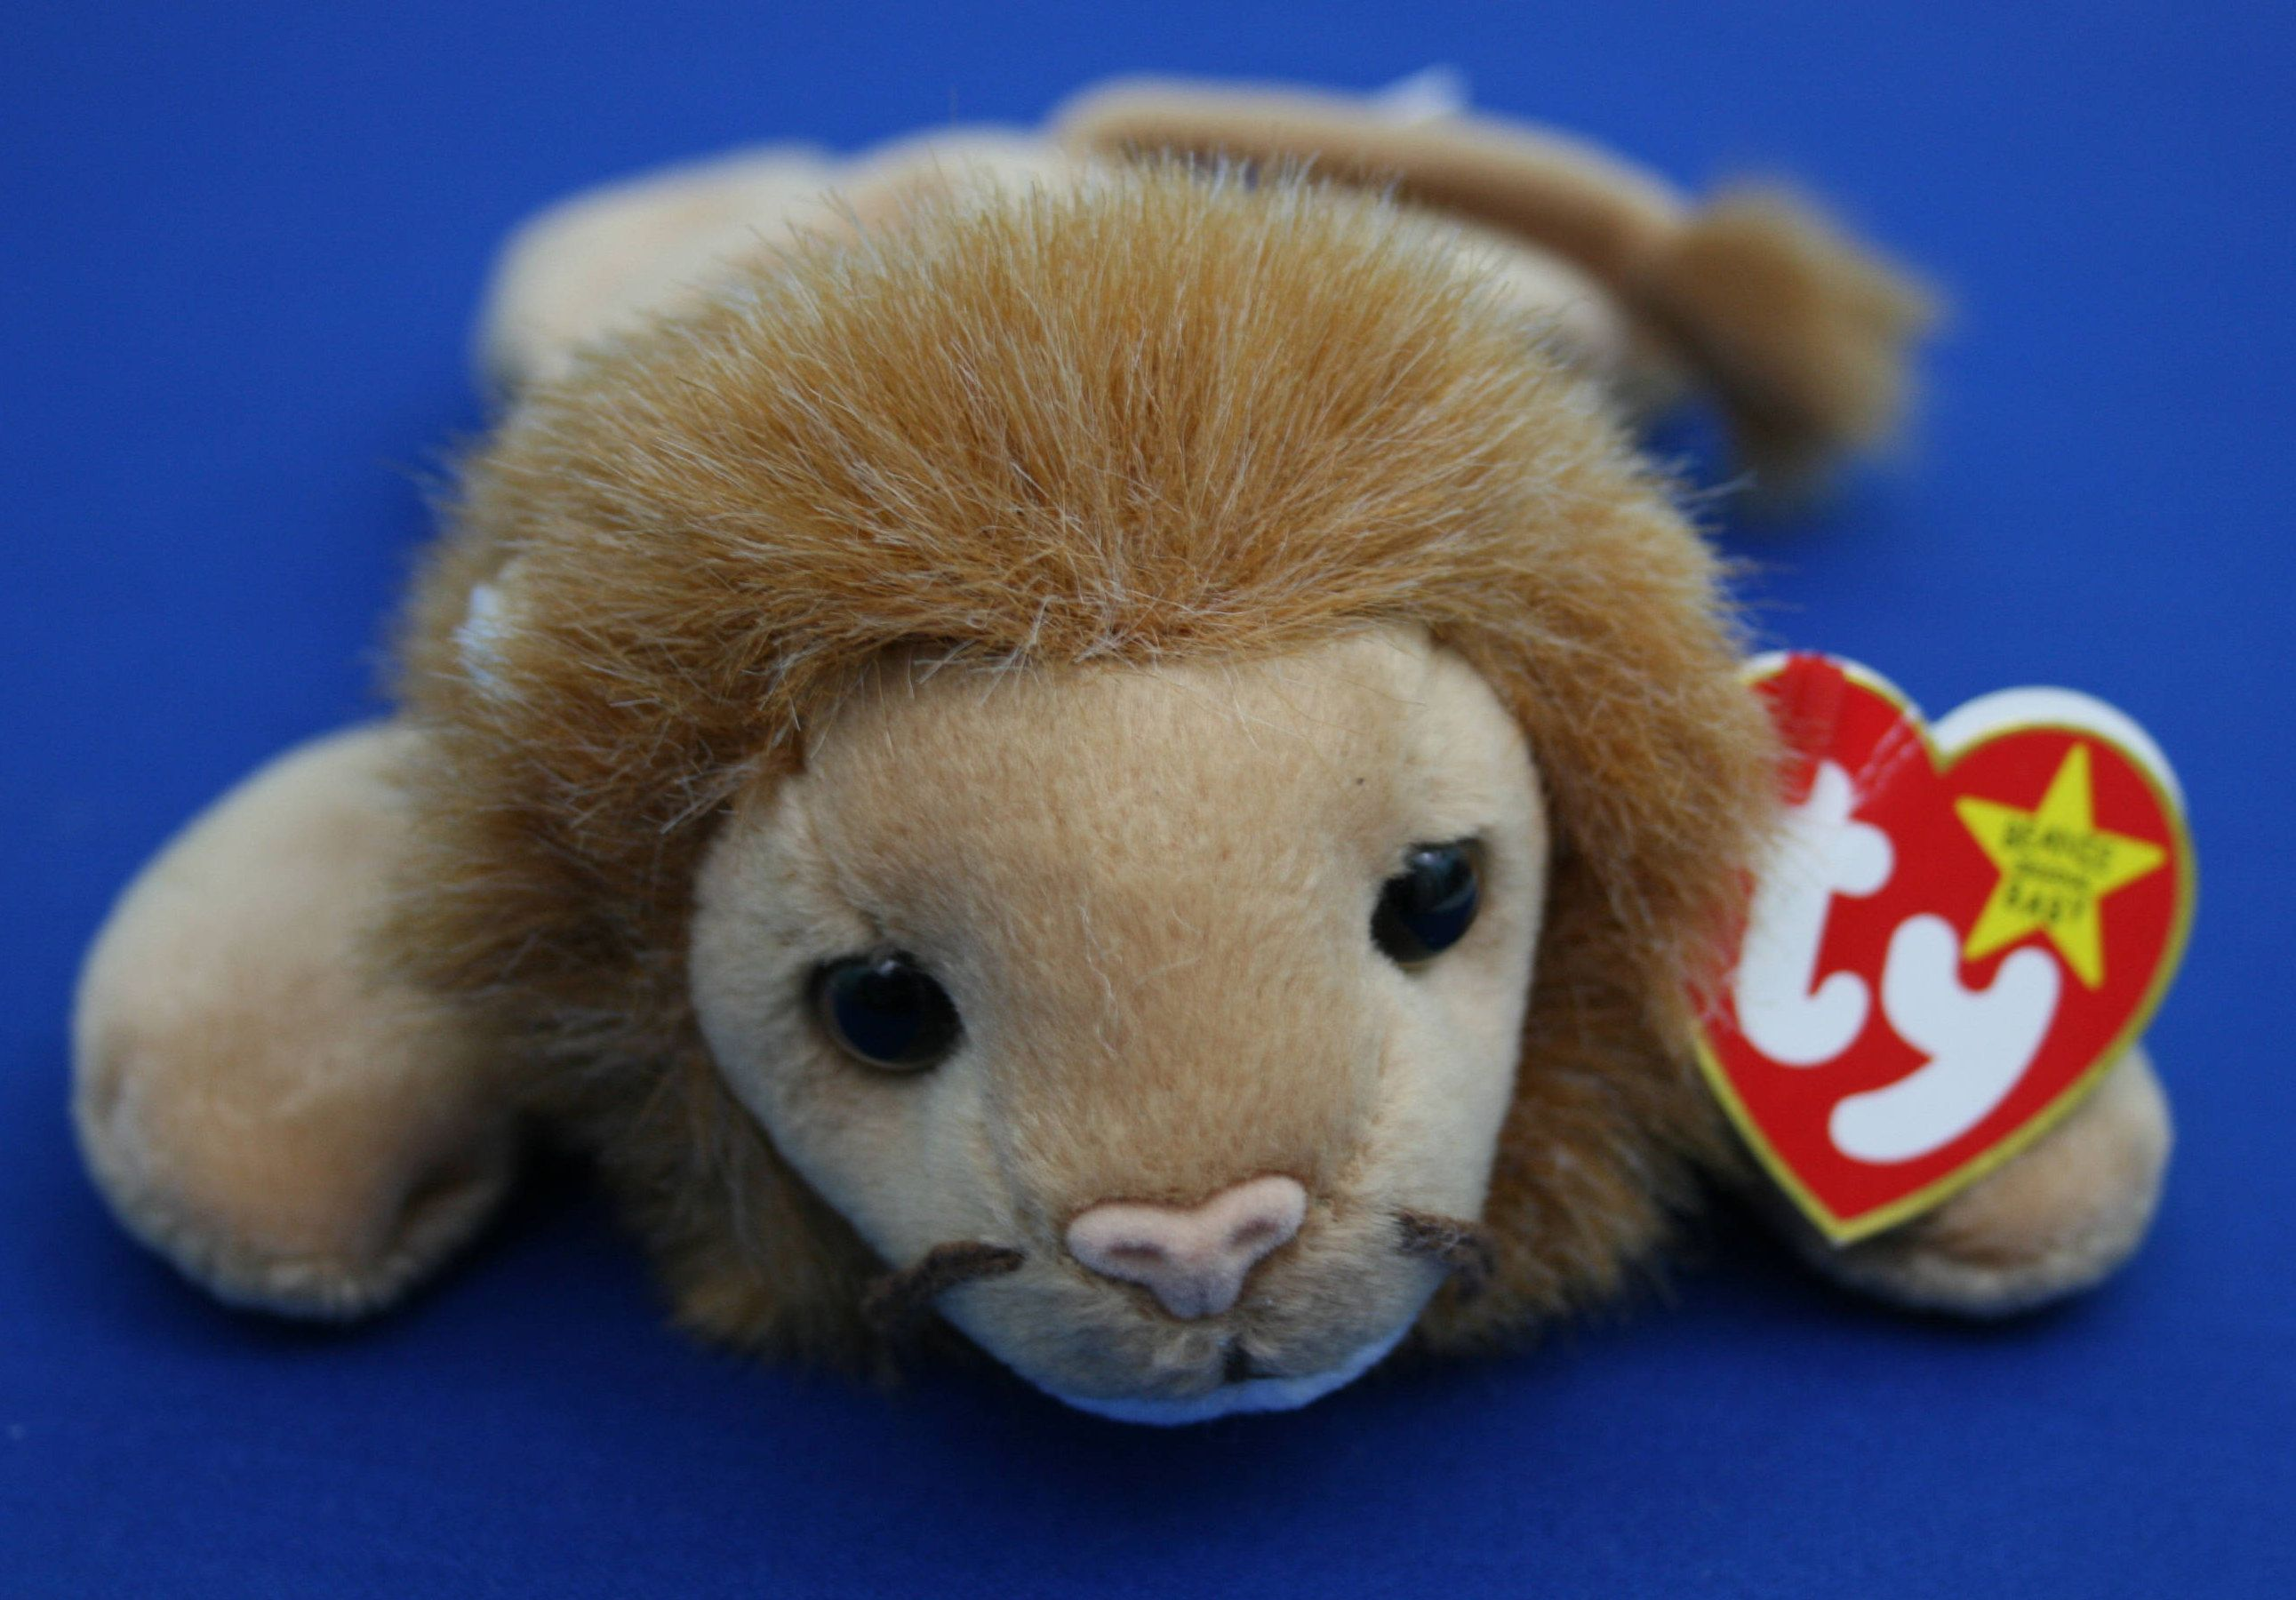 b5e37f06f91 Vintage Ty Beanie Baby Roary the Lion Beanie Baby with 2 production errors  by CuriosandAntiques on Etsy